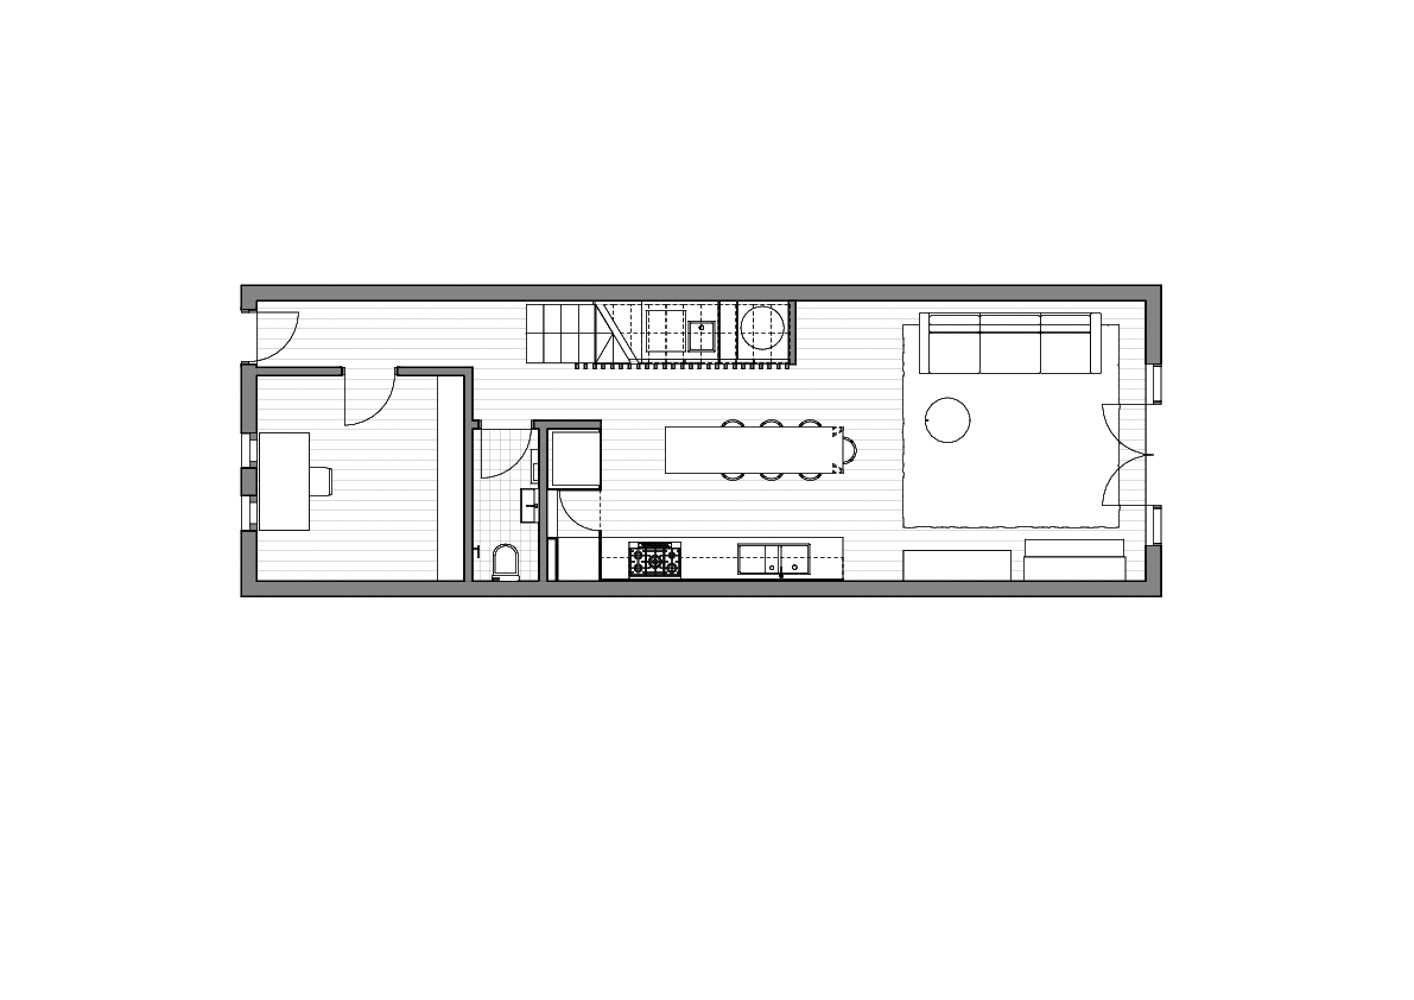 seven-seat-house-kitty-lee-architecture-the-design-emotive-16.jpg